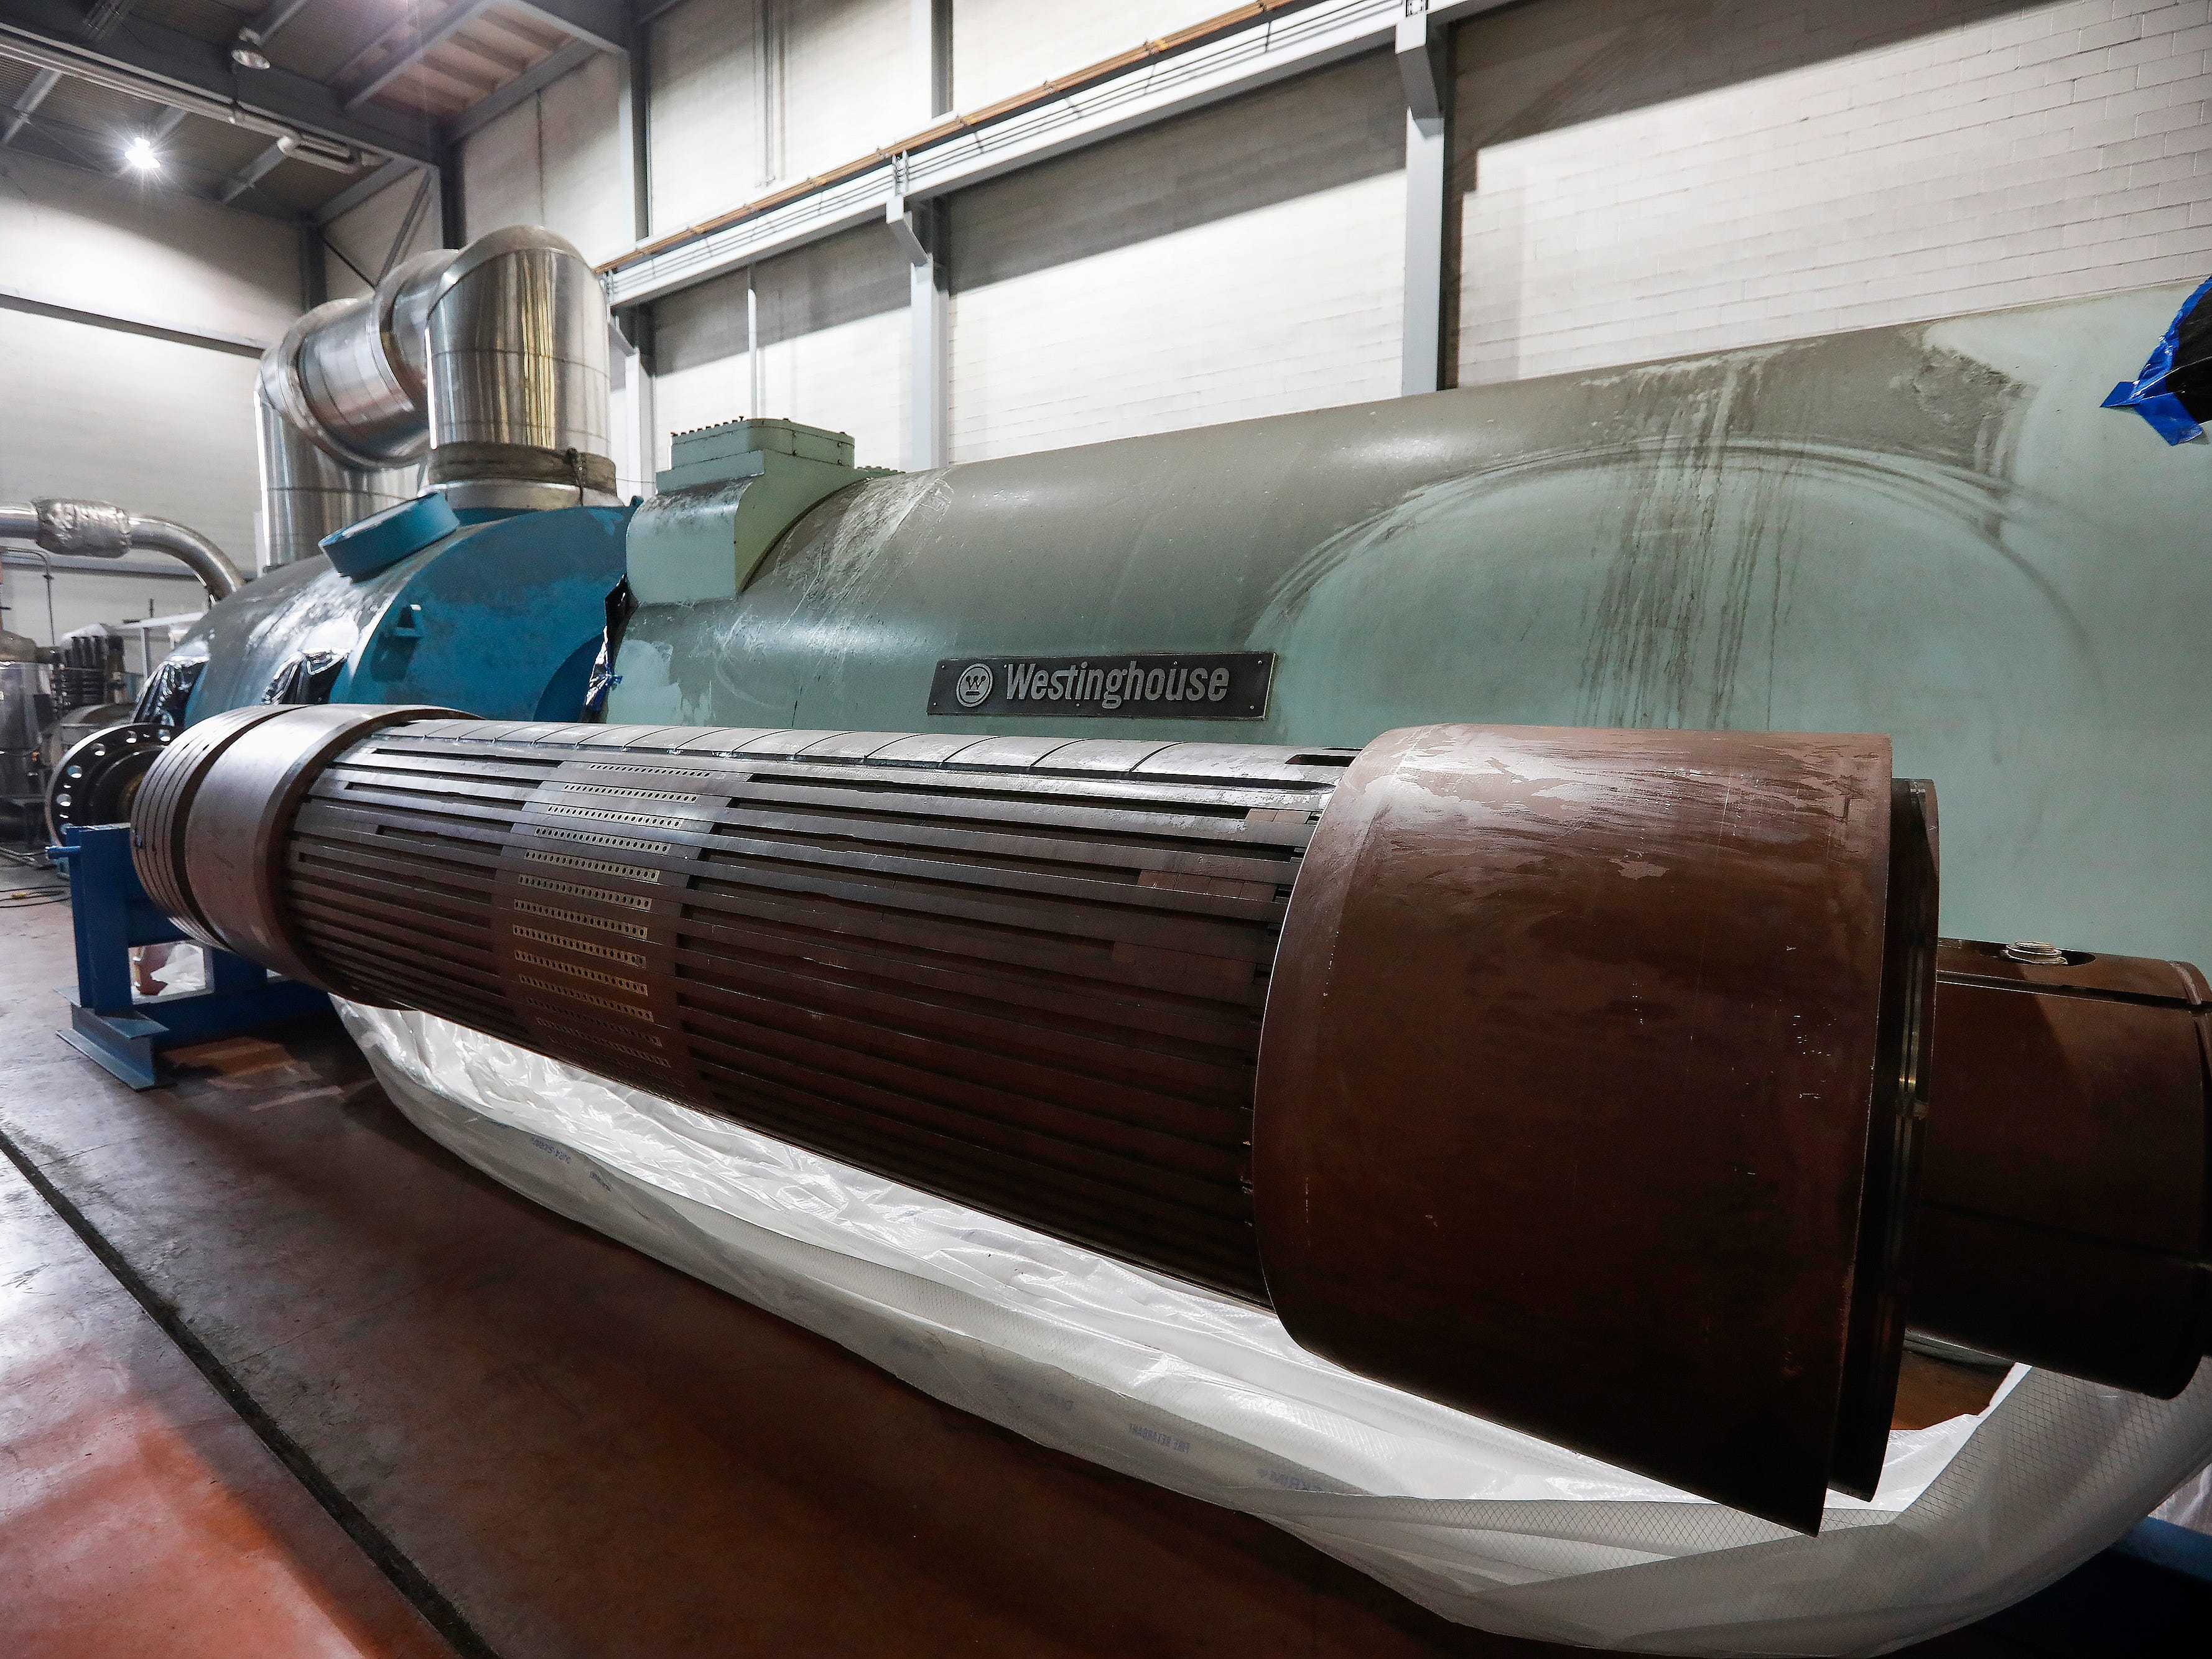 High winds on Feb. 23 caused a switch to be flipped at the John Twitty Energy Center, causing damage to the rotor near the 86,000-pound turbine.